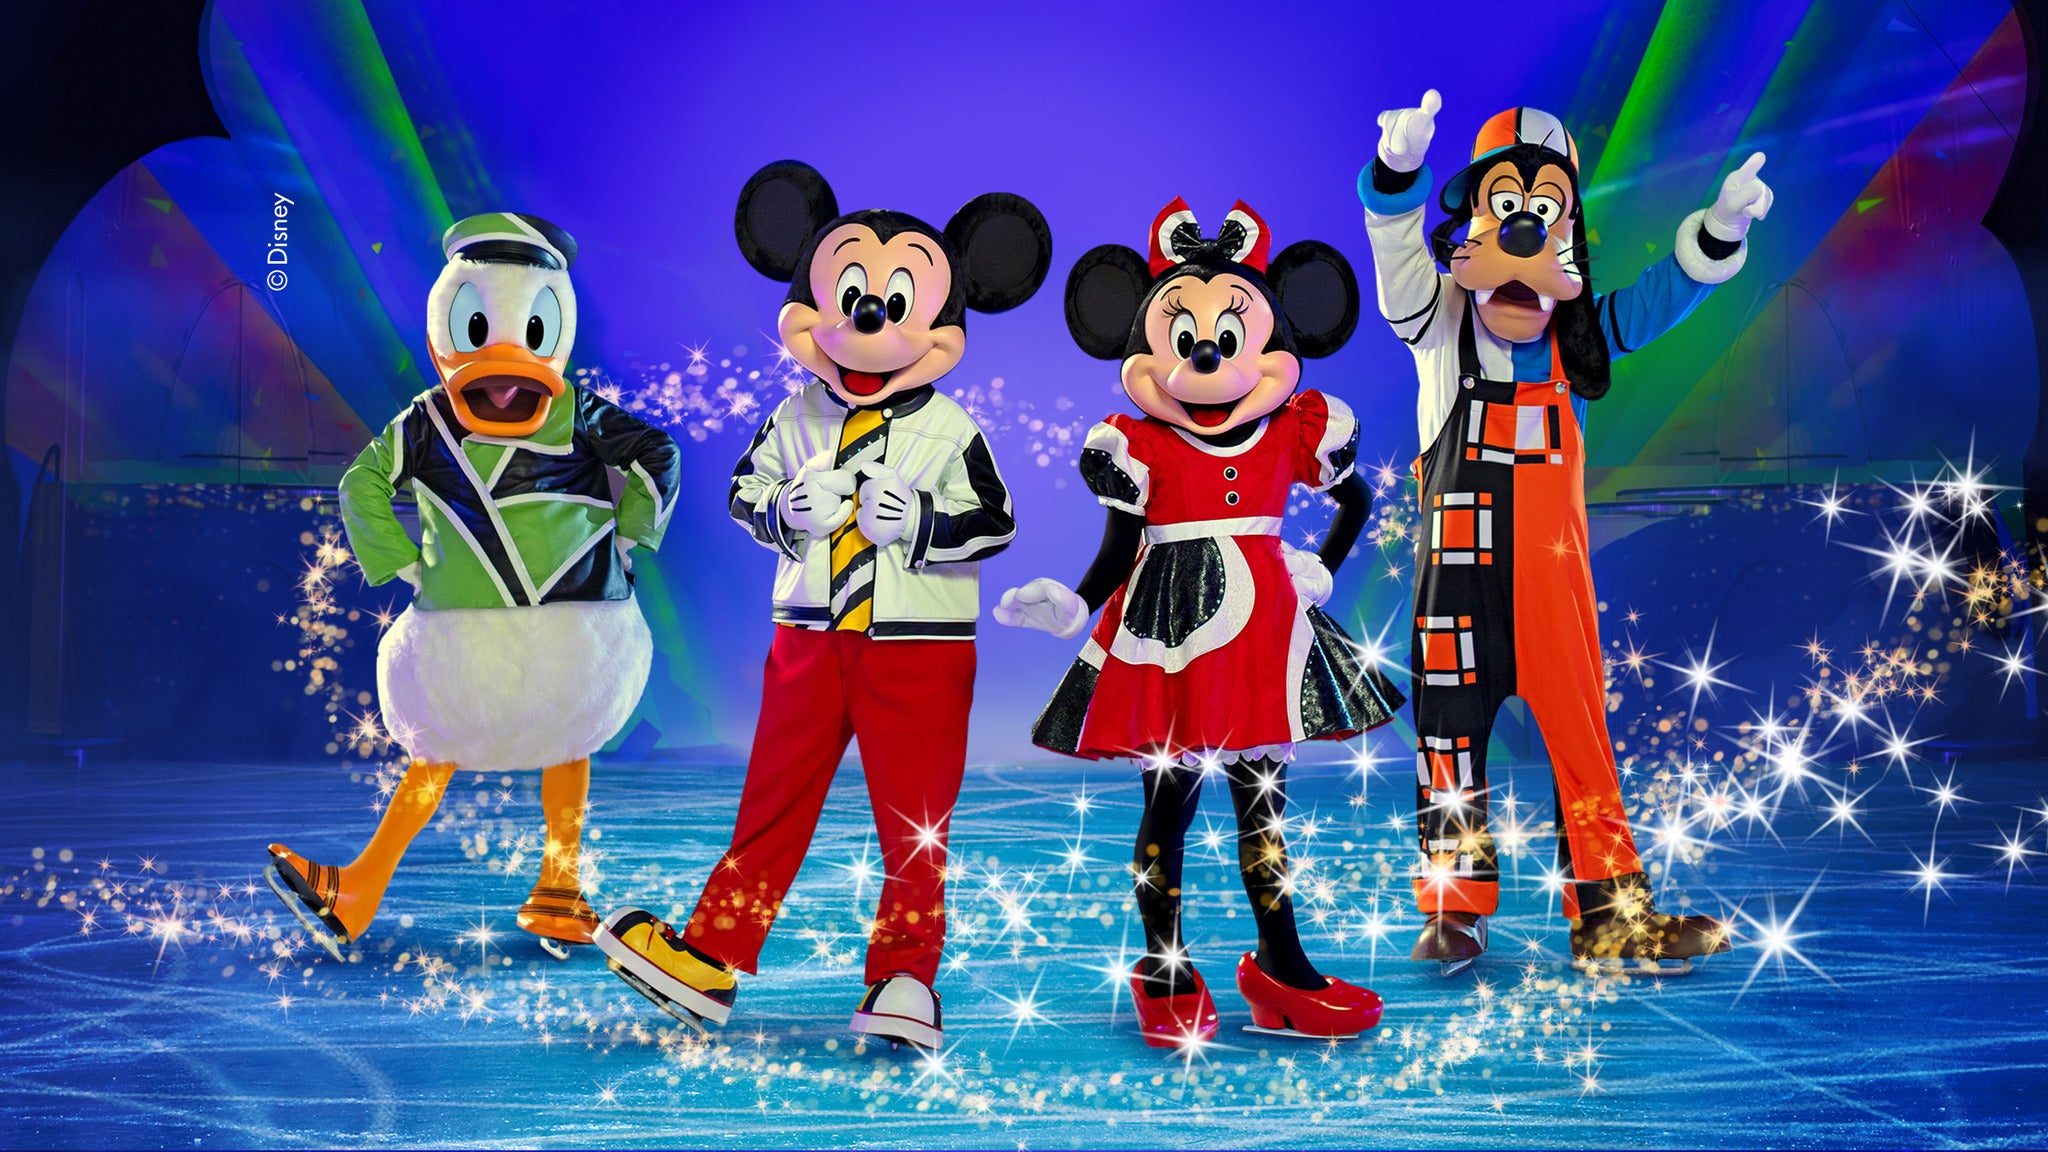 Disney On Ice presents Mickey's Search Party presale code for show tickets in Orlando, FL (Amway Center)